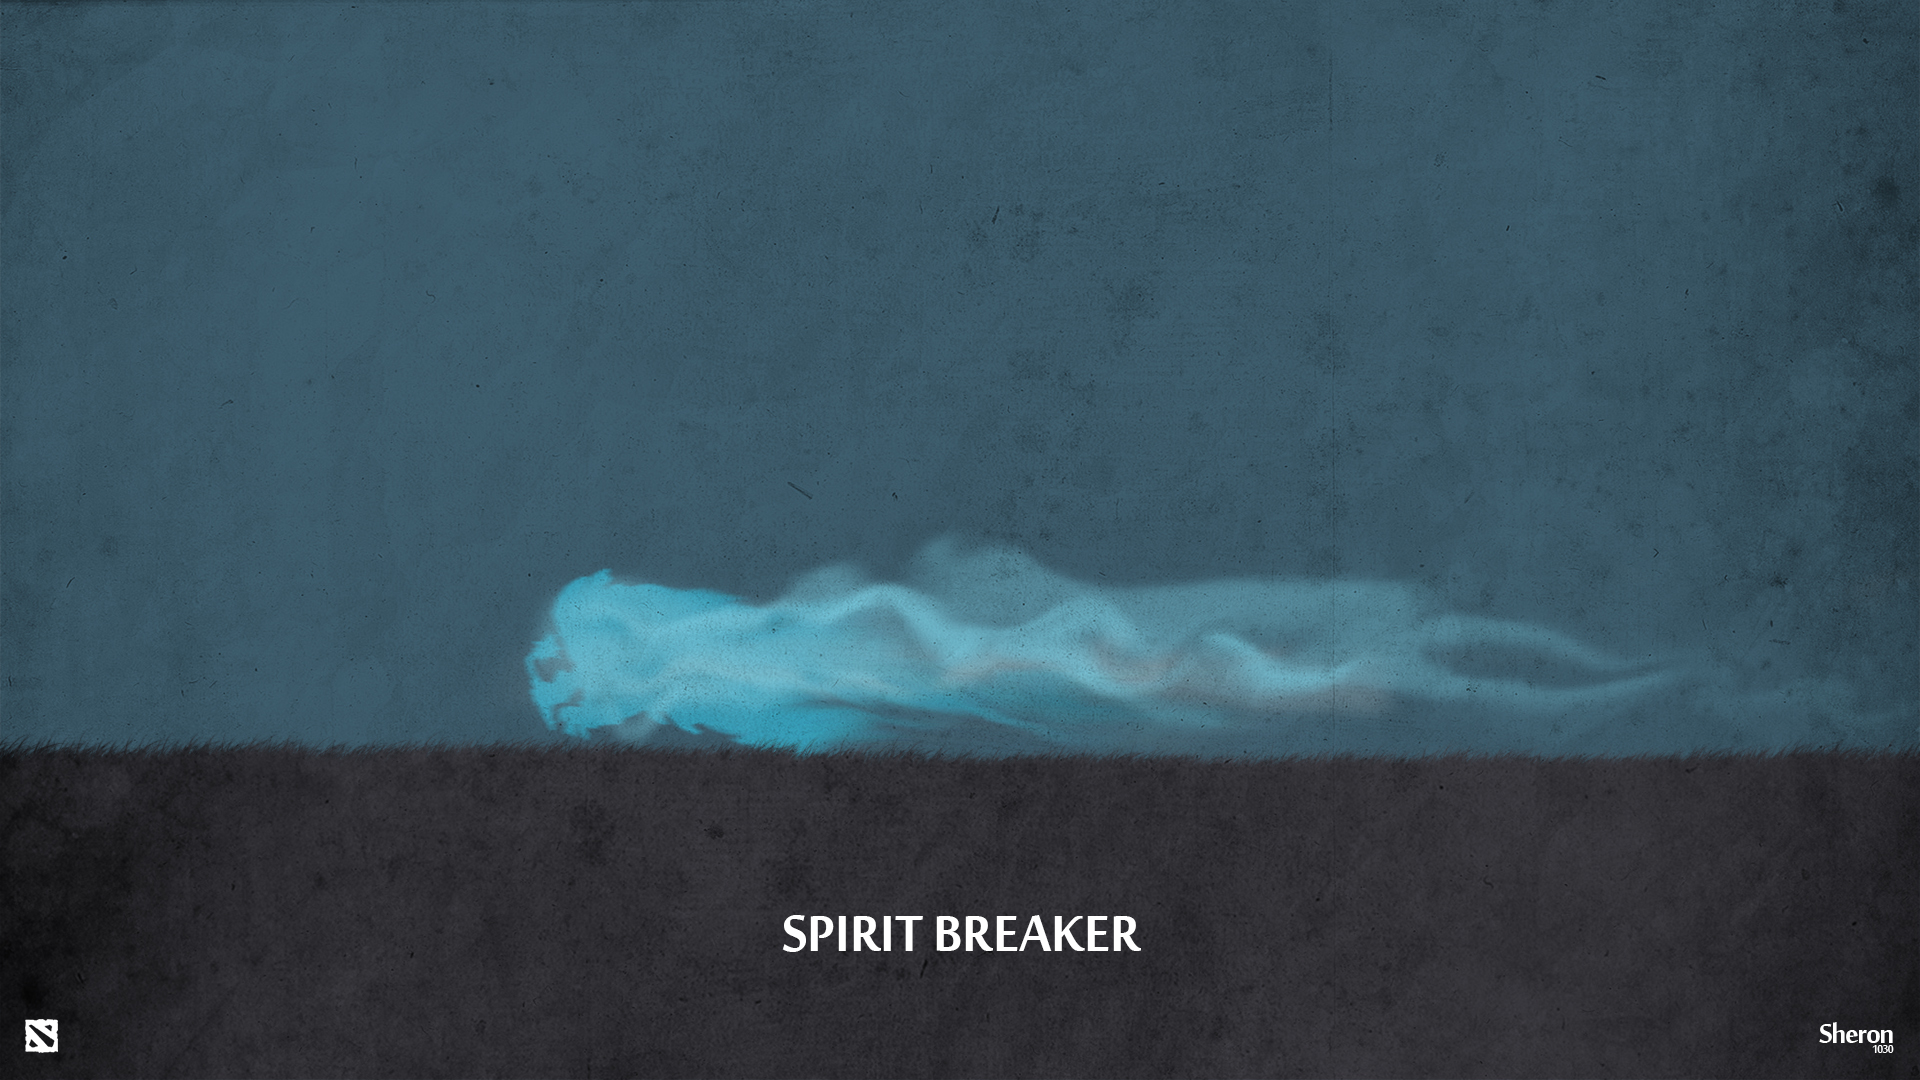 Dota 2 - Spirit Breaker Wallpaper by sheron1030